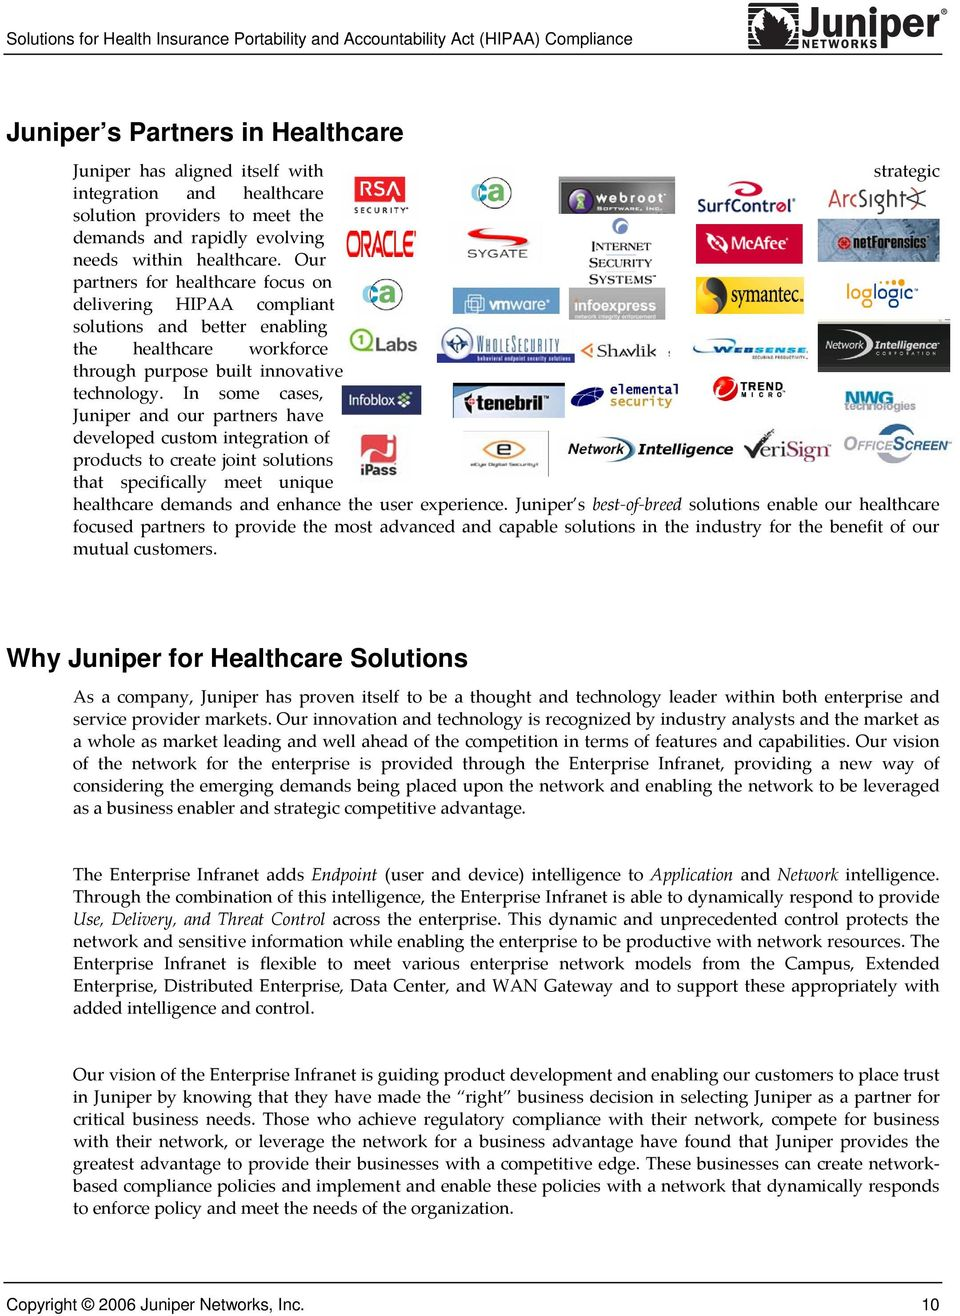 In some cases, Juniper and our partners have developed custom integration of products to create joint solutions that specifically meet unique healthcare demands and enhance the user experience.